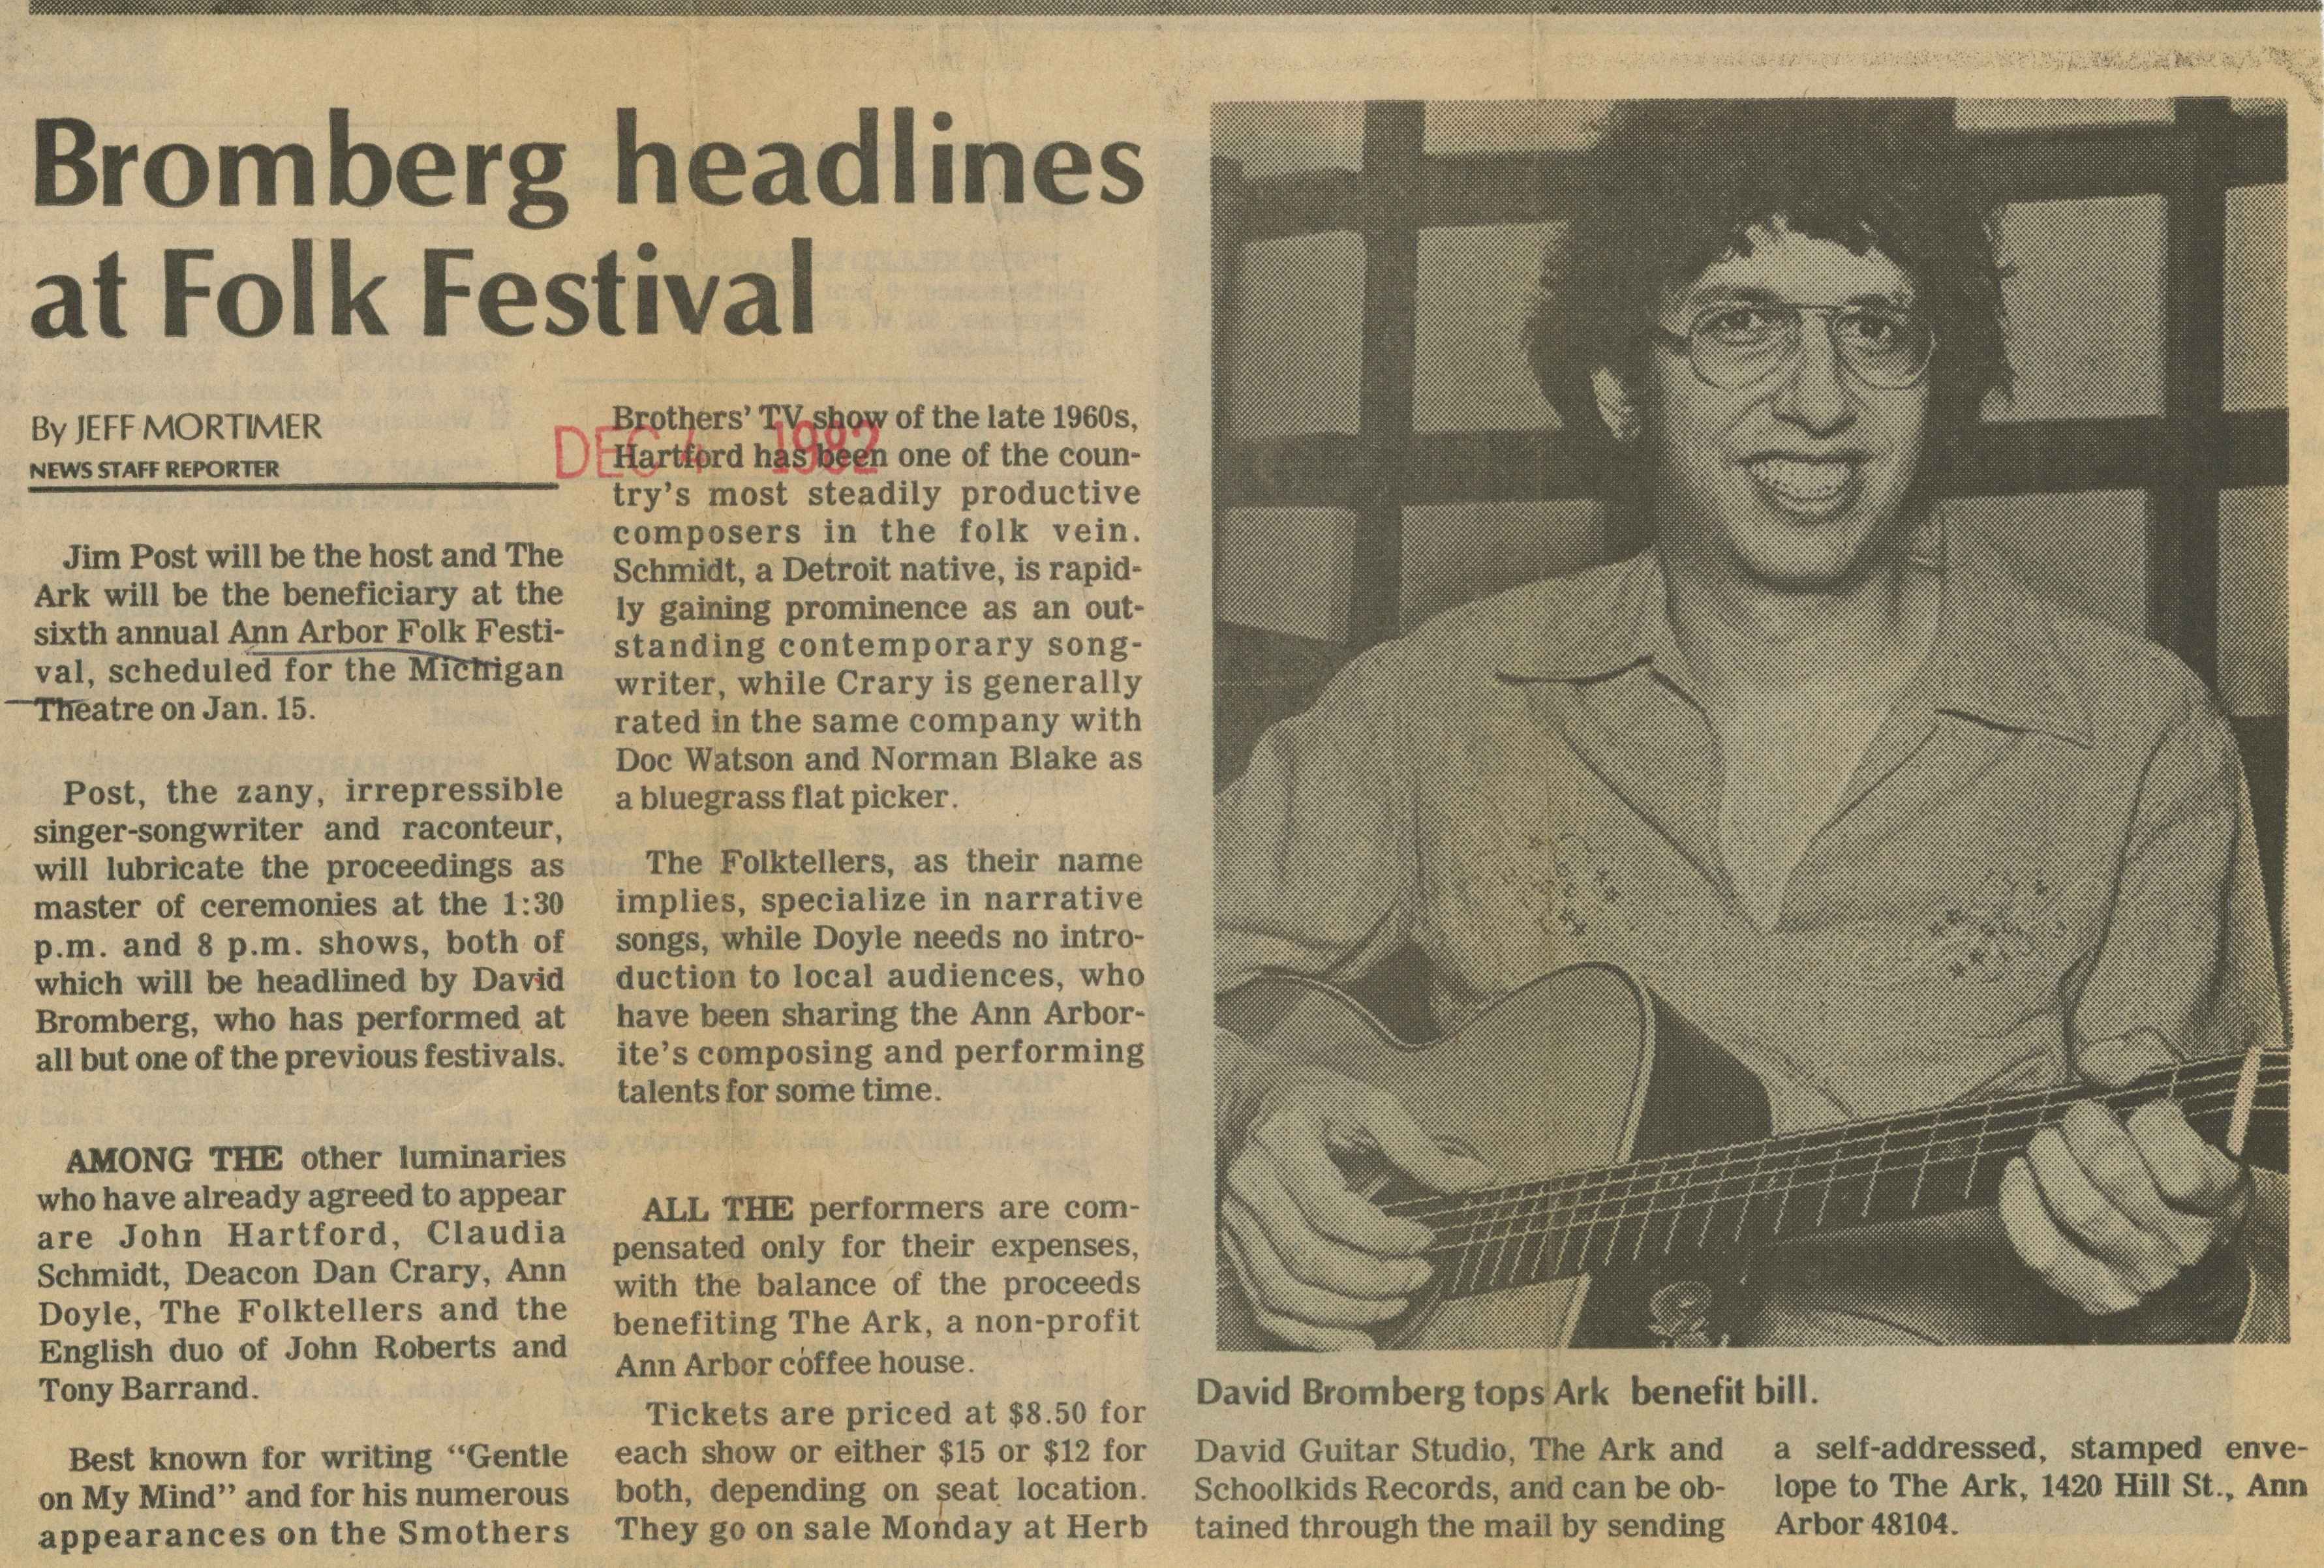 Bromberg headlines at Folk Festival image